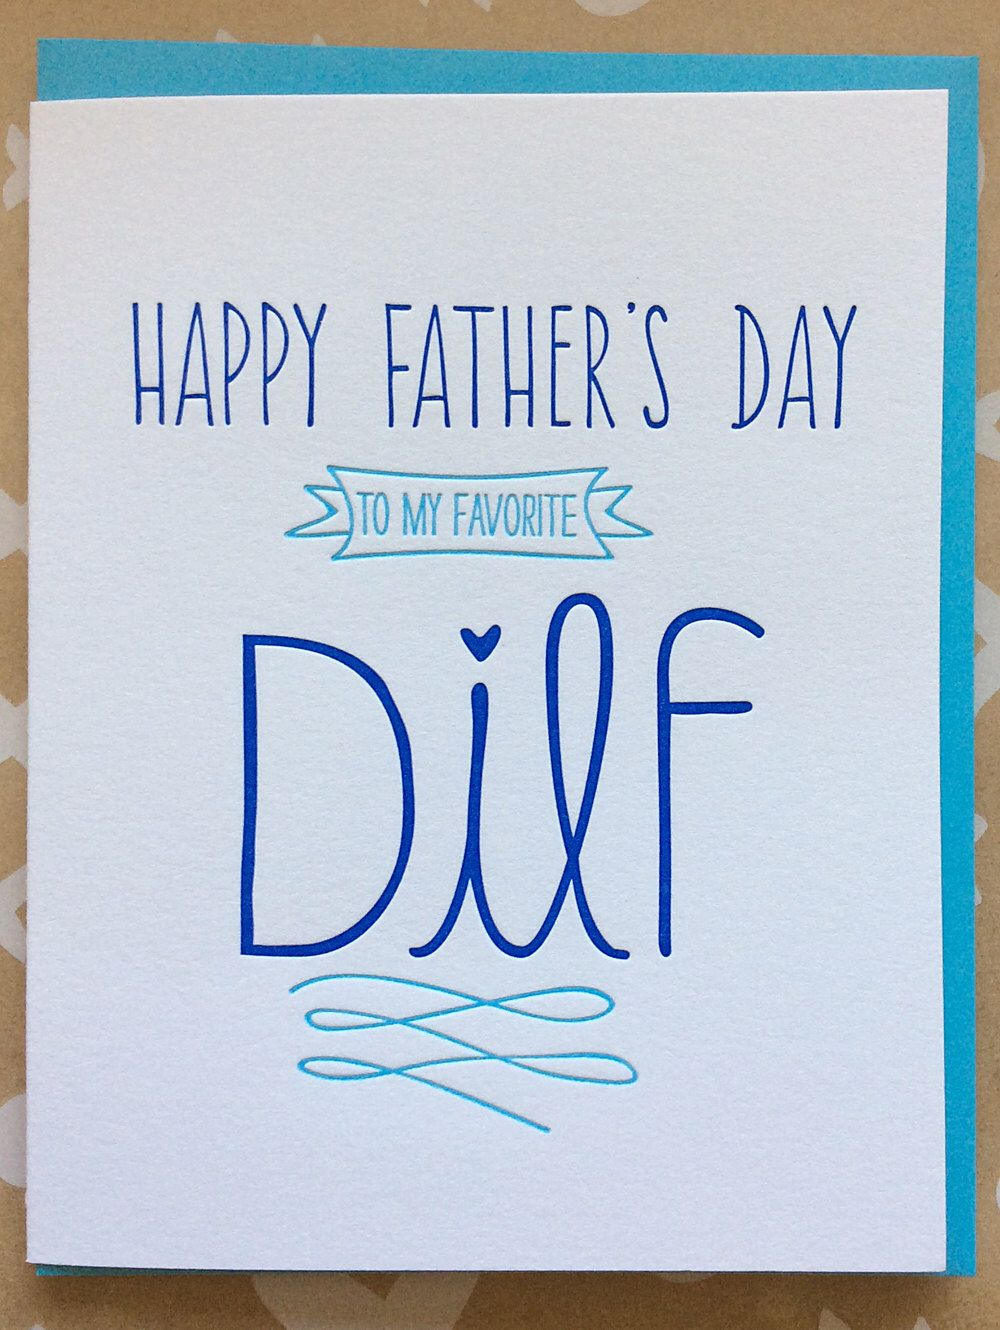 Fathers Day Card From Wife Funny Fathers Day Card For Husband